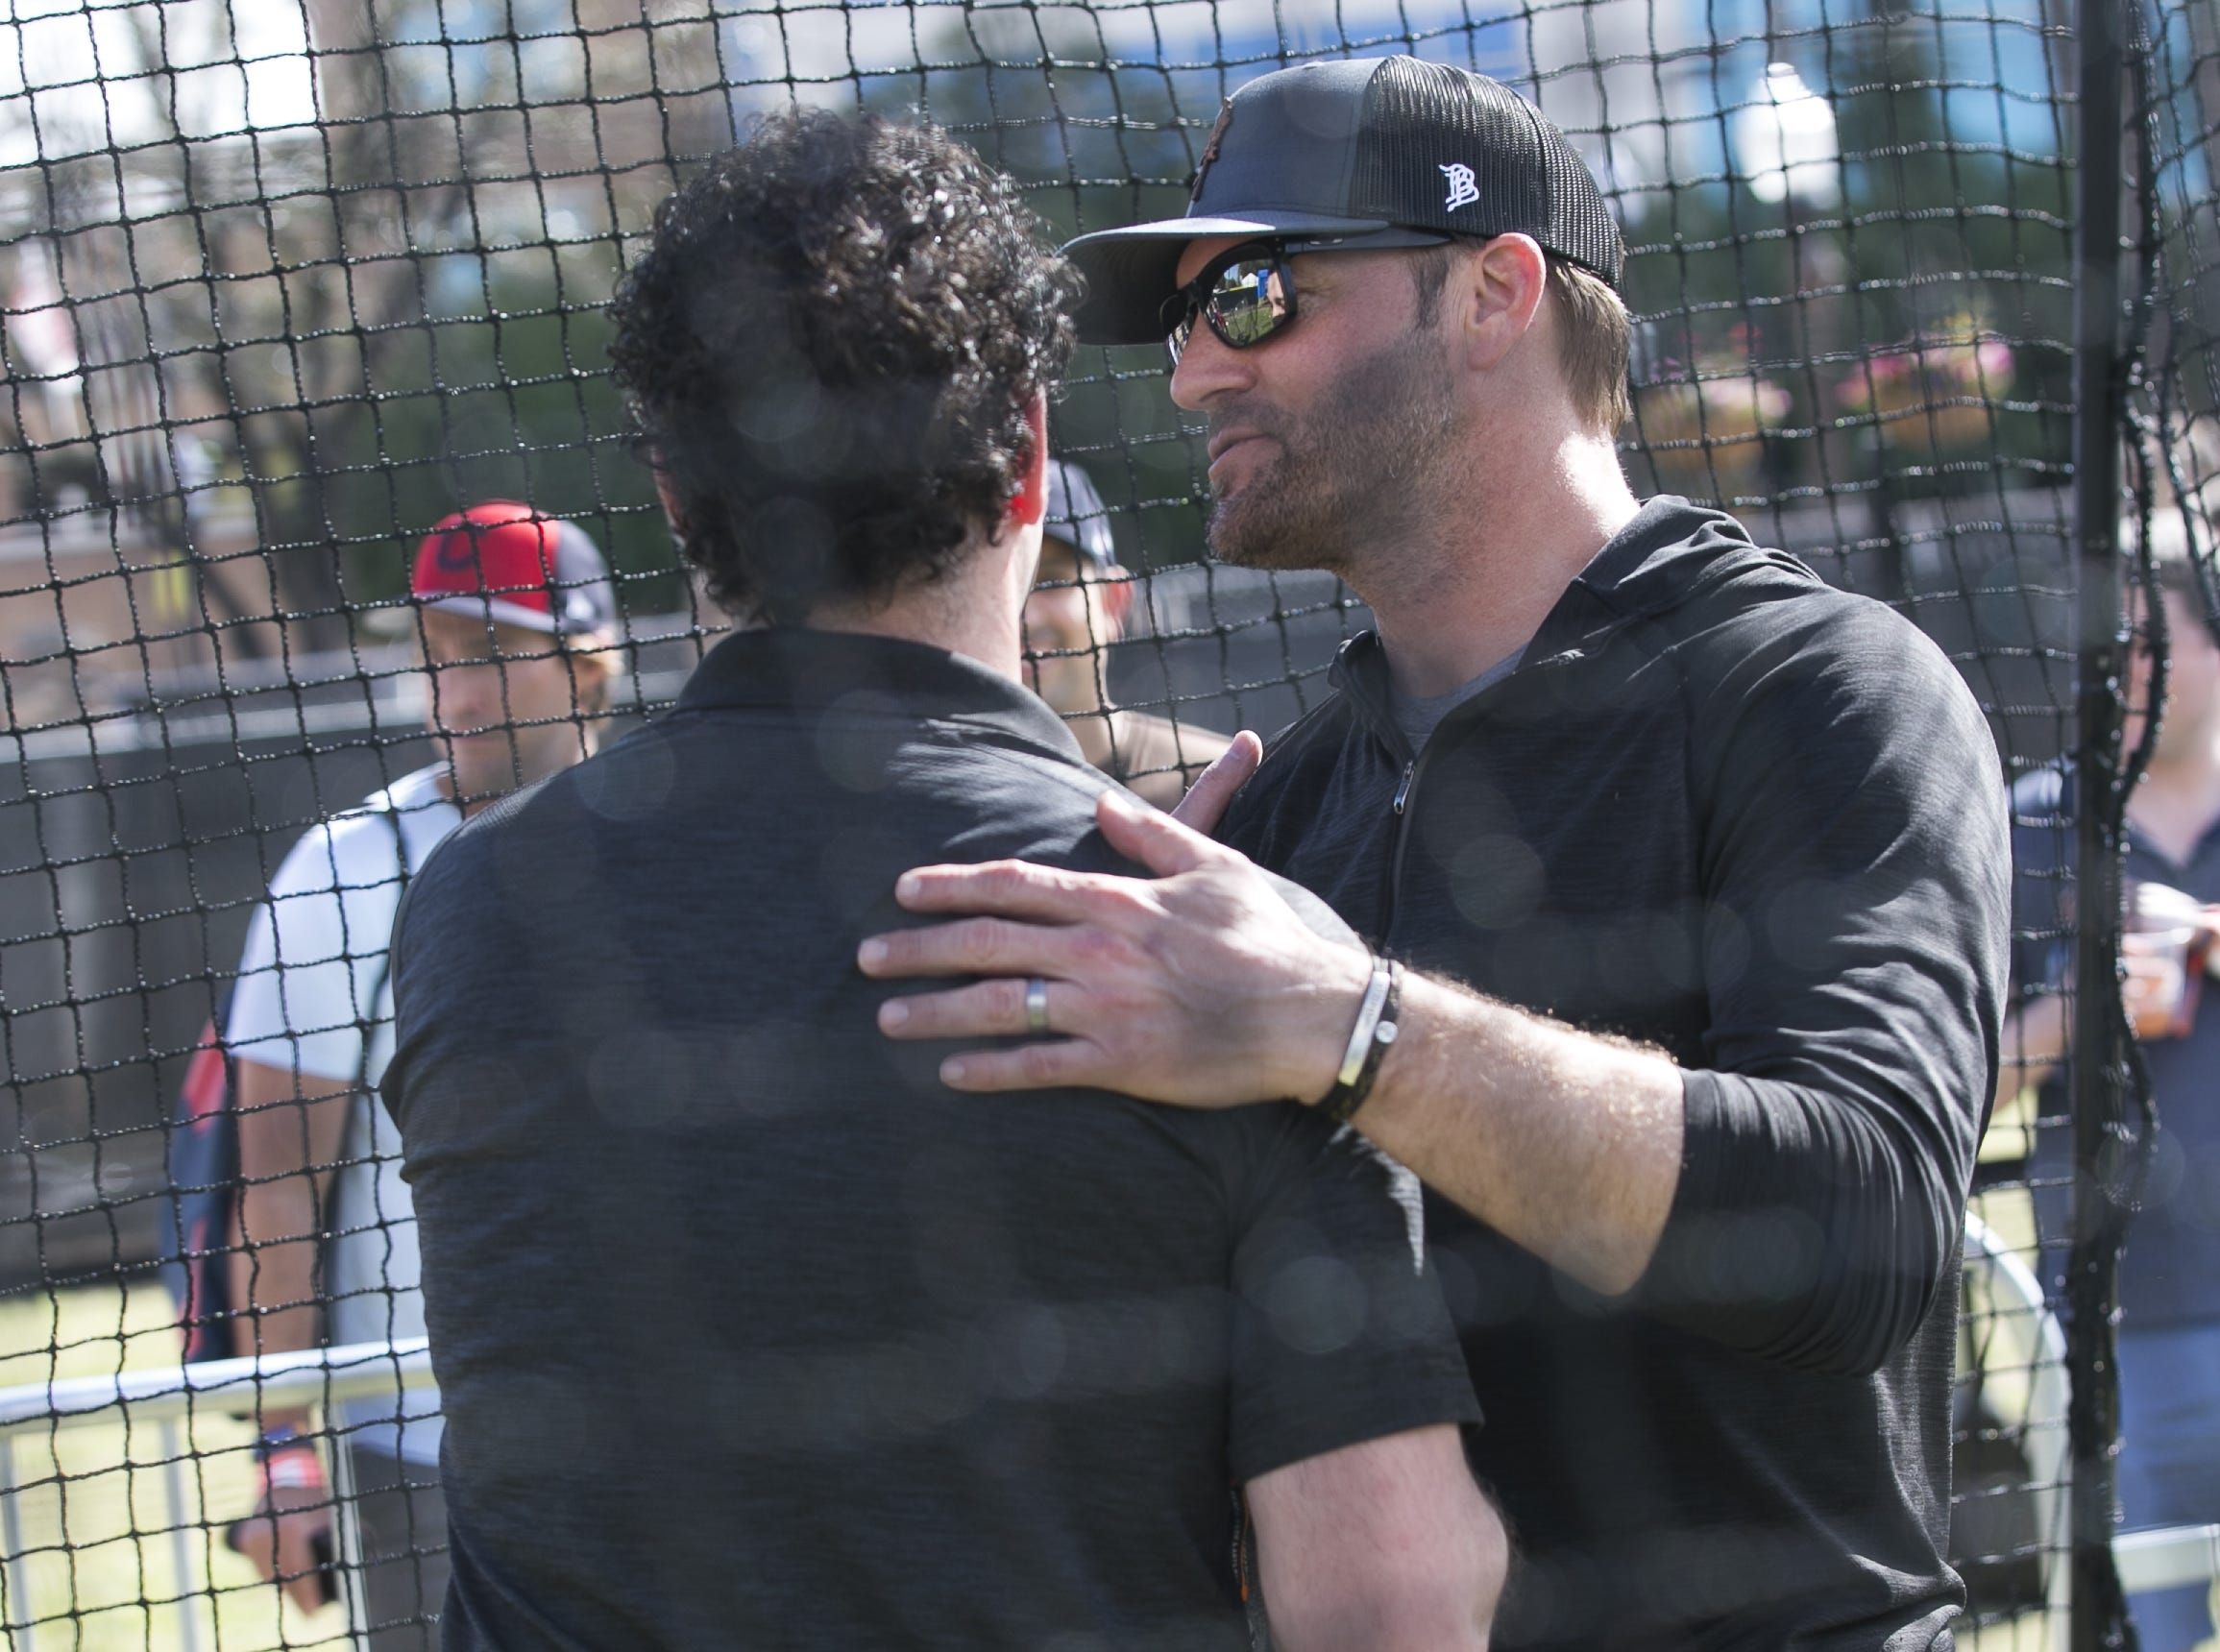 Former MLB pitcher Shawn Estes (right) shows fans pitching techniques at the Innings Festival at Tempe Beach Park on Saturday, March 2, 2019.